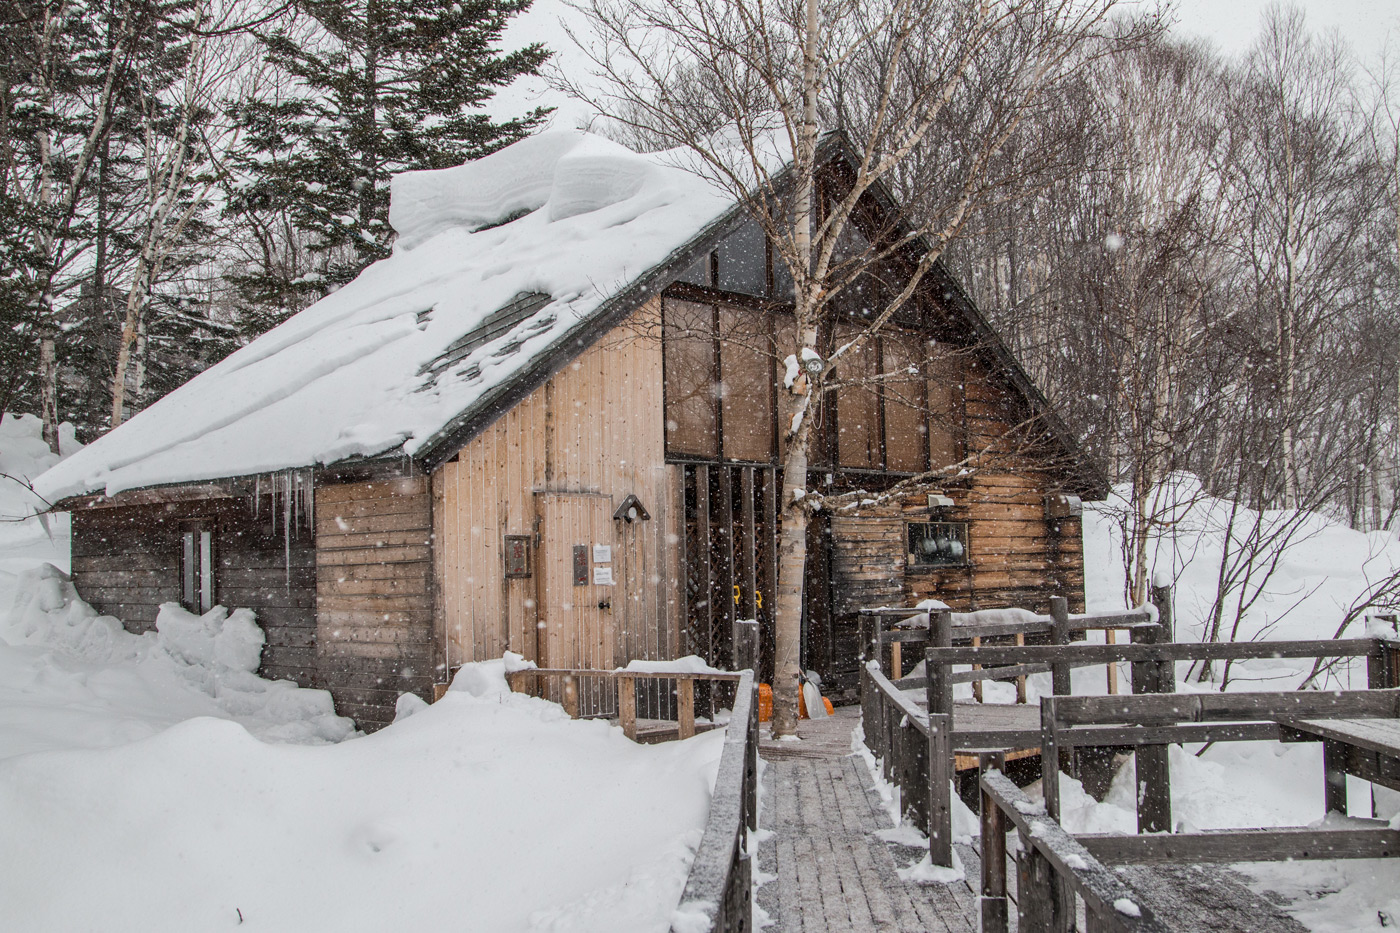 The amazing small restaurant amongst the snow